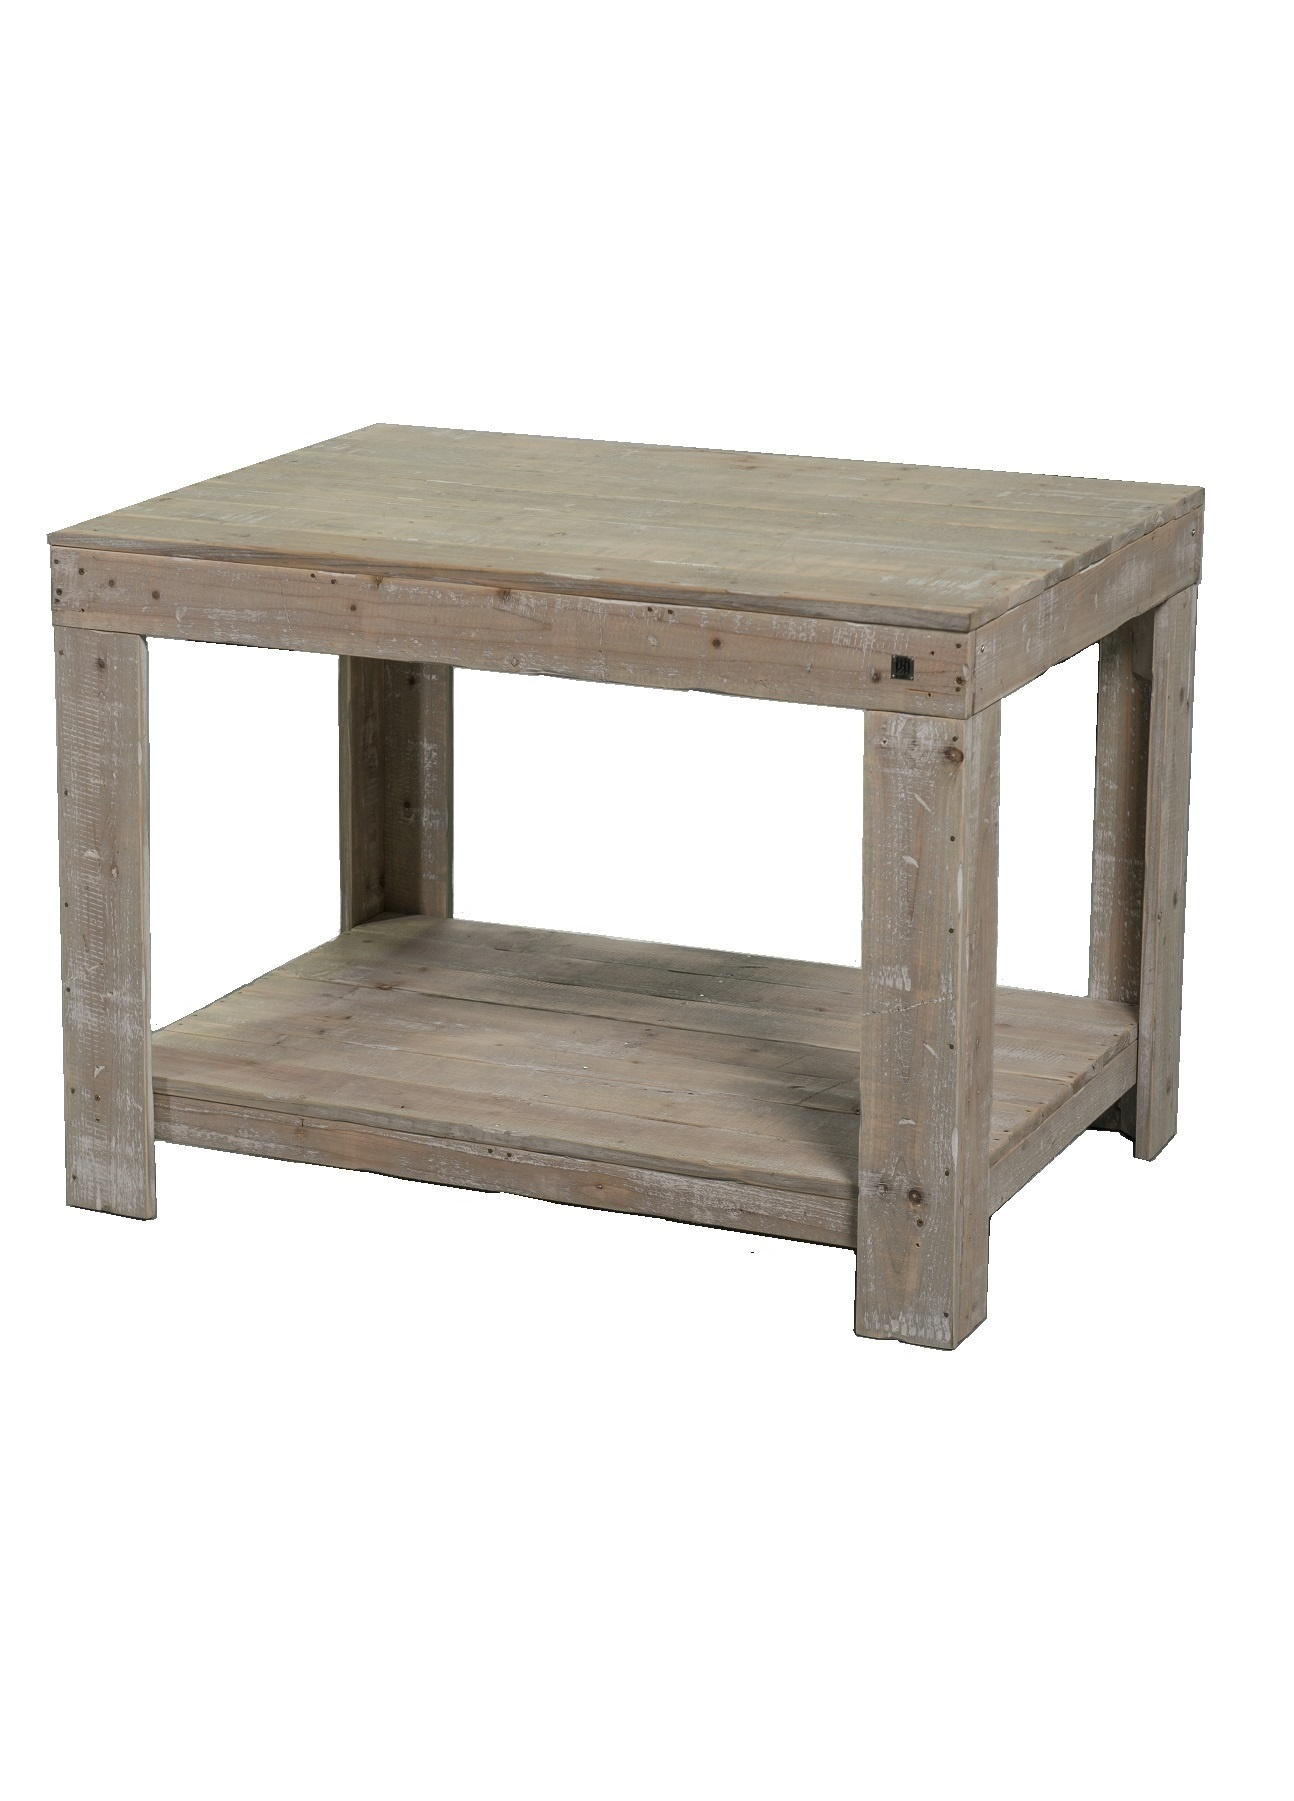 shop int old dutch table double 110-1